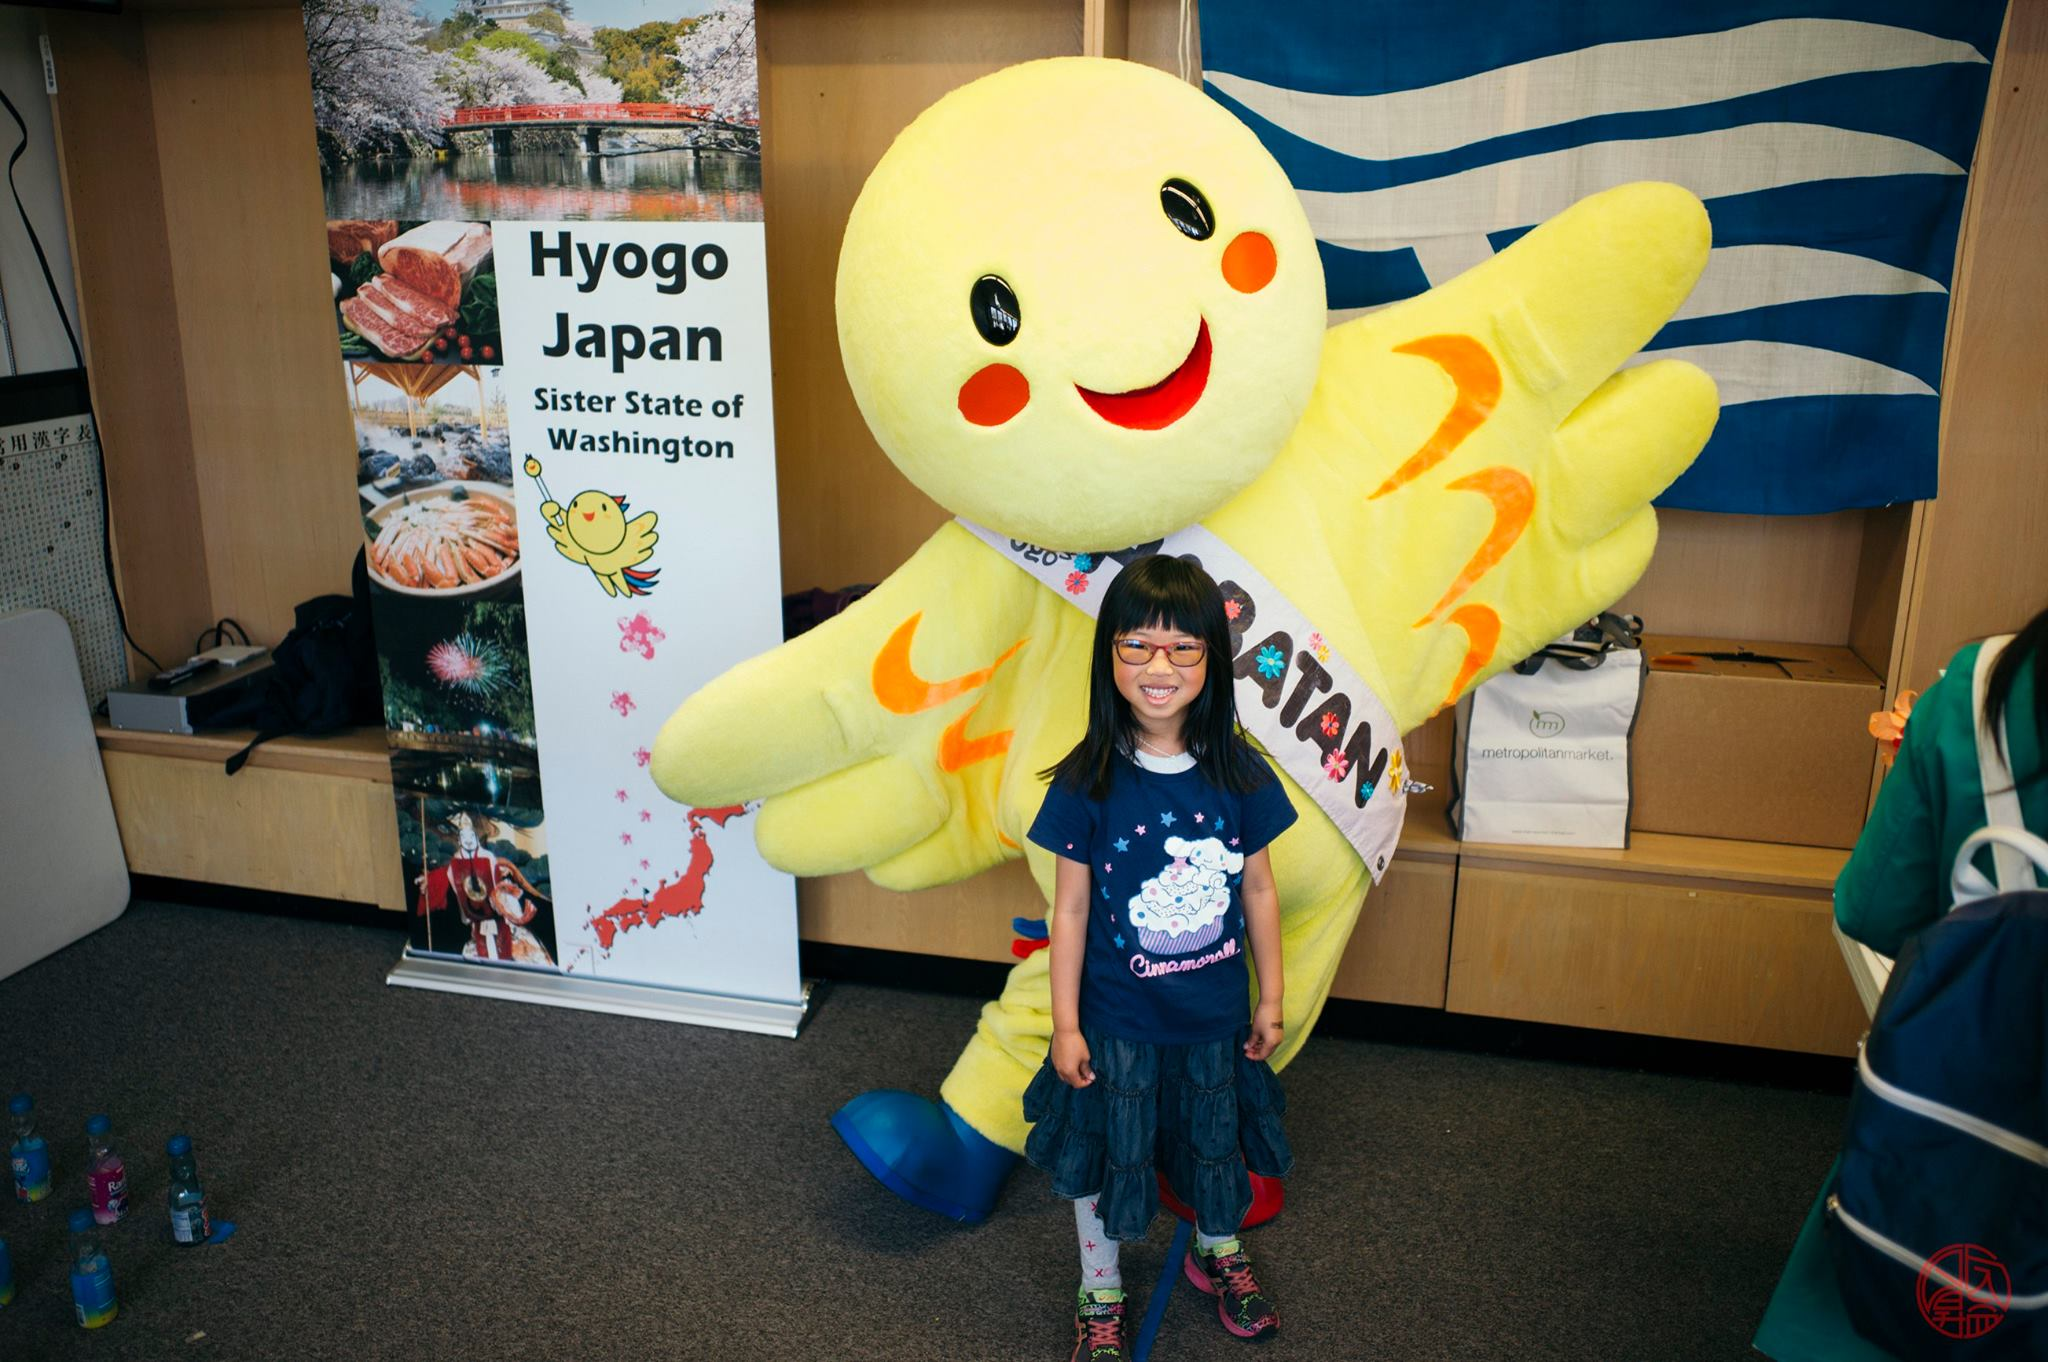 The mascot from the Hyogo Business & Culture Center is always a popular hit with children.